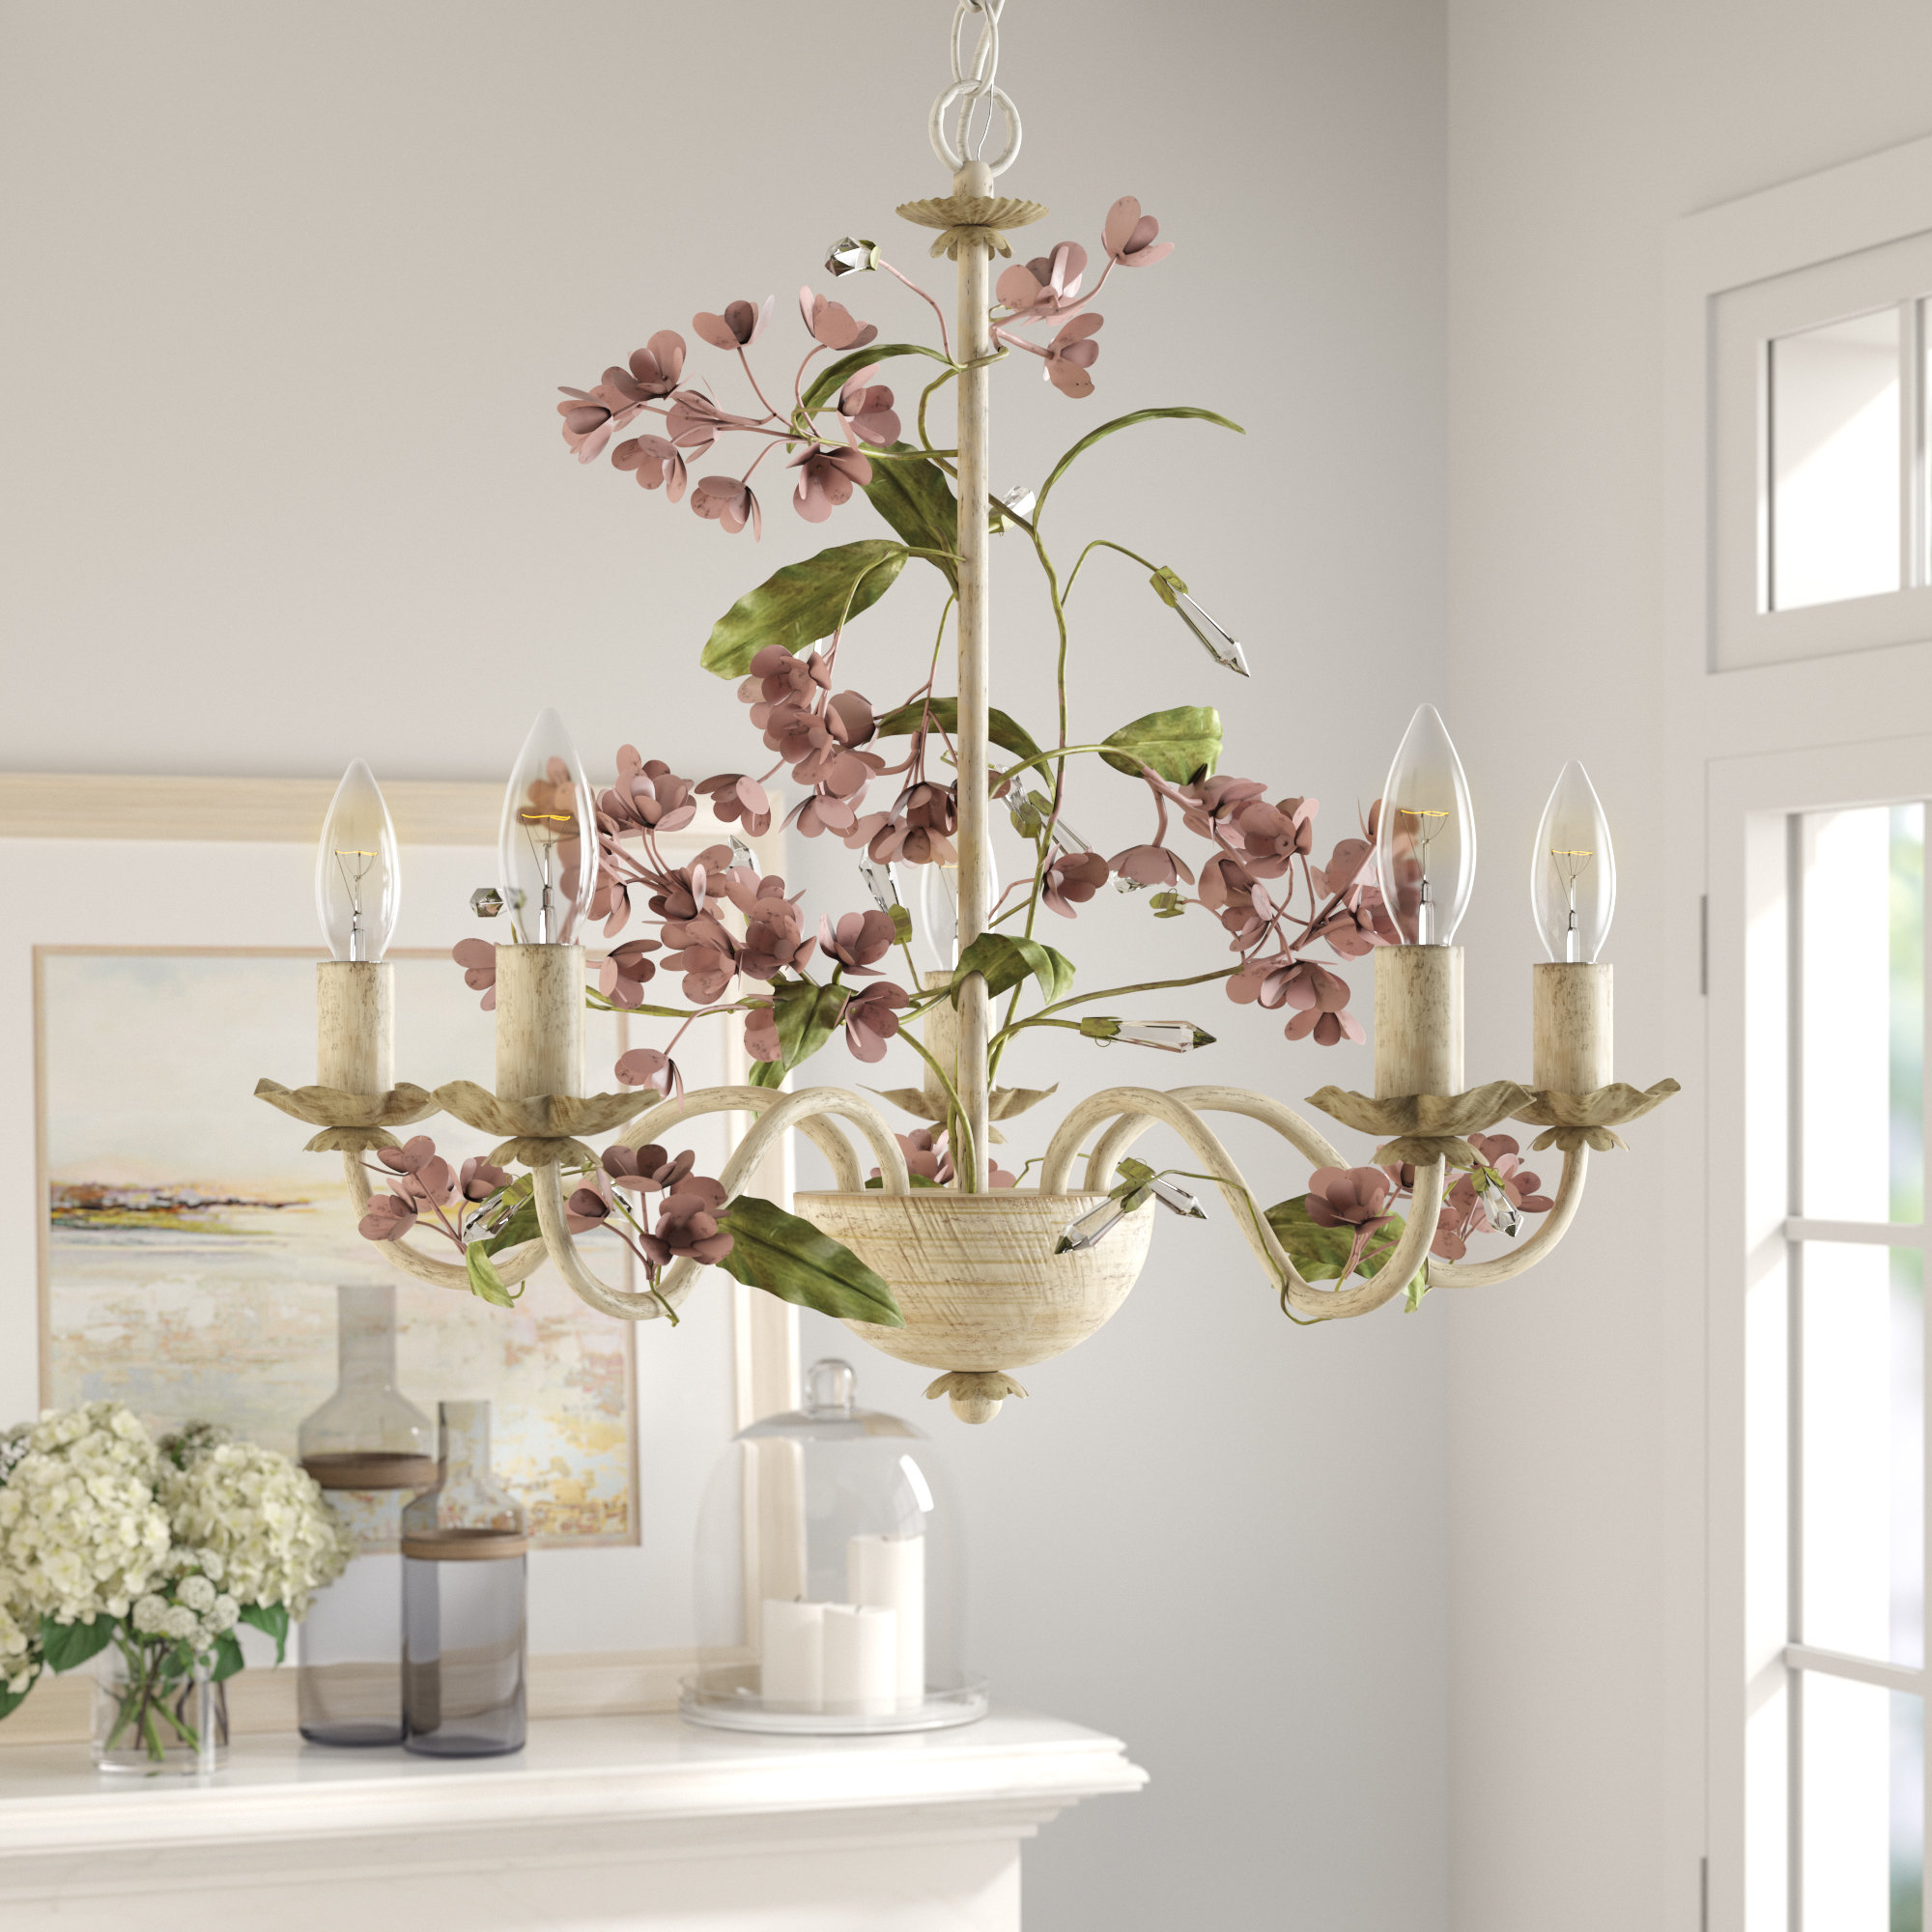 Hesse 5 Light Candle Style Chandeliers Within Most Up To Date 5 Light Candle Style Chandelier (Gallery 2 of 20)